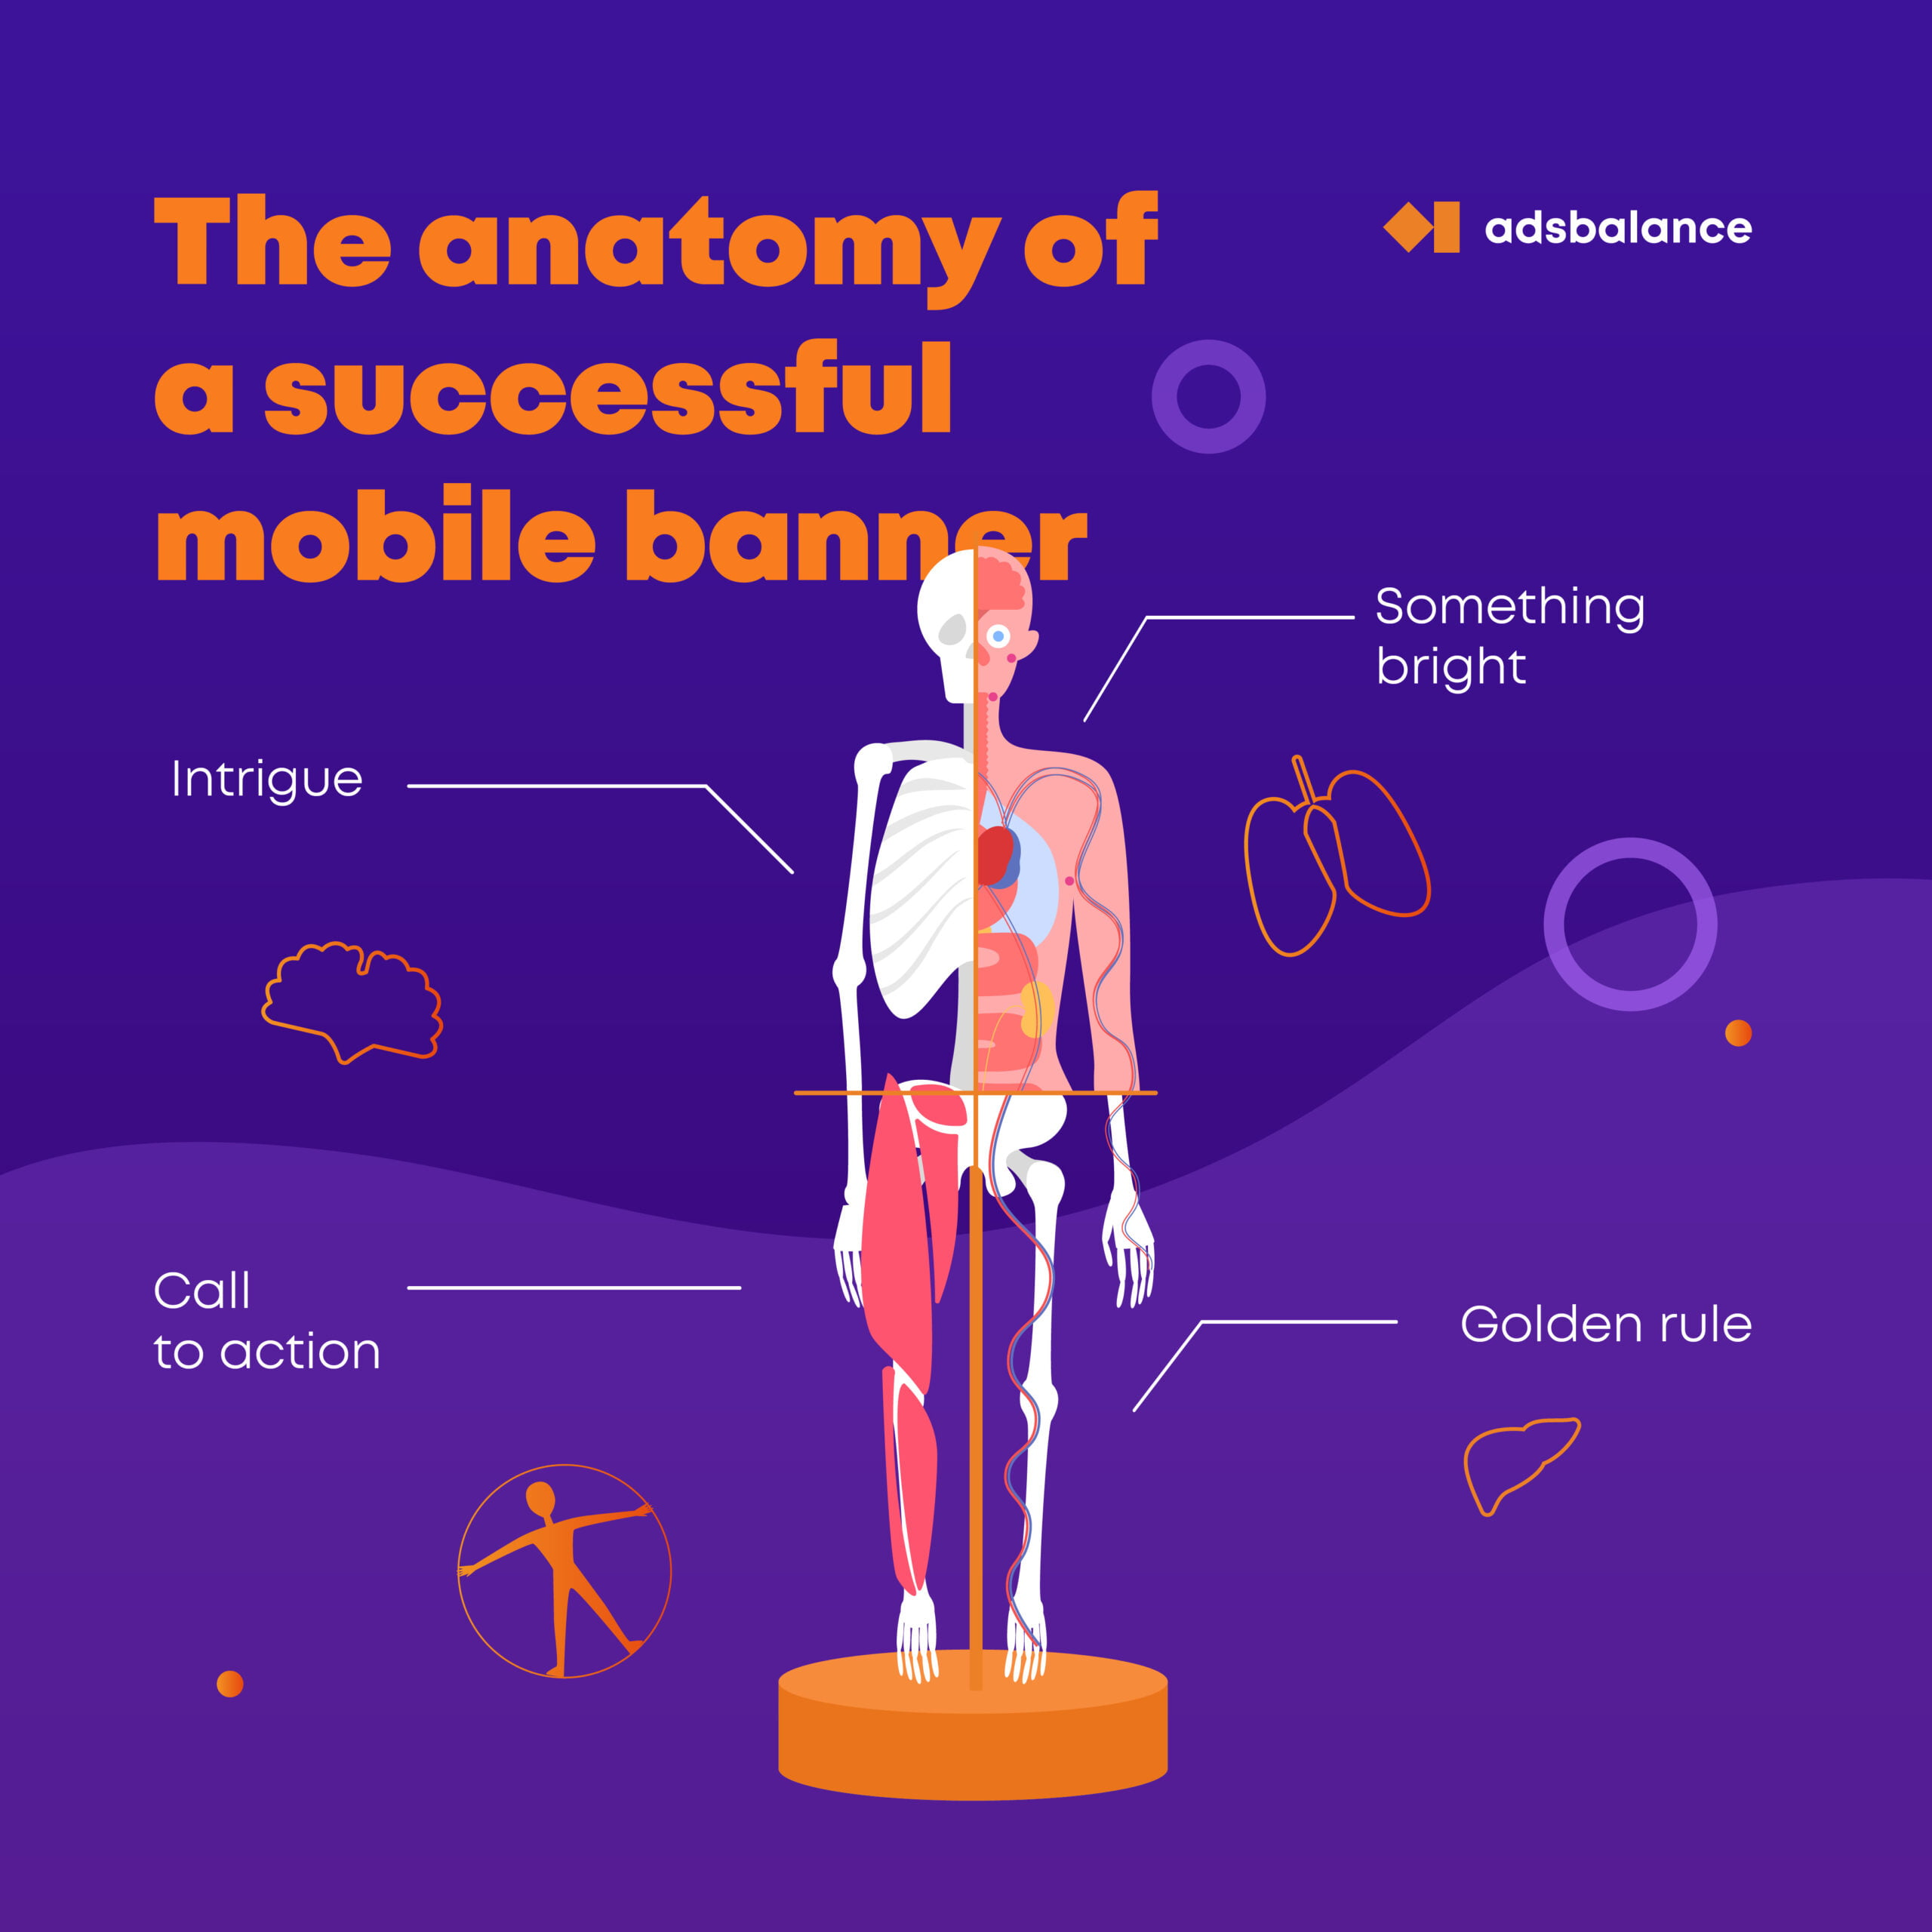 The anatomy of a succesful banner: how do you create ads that work?